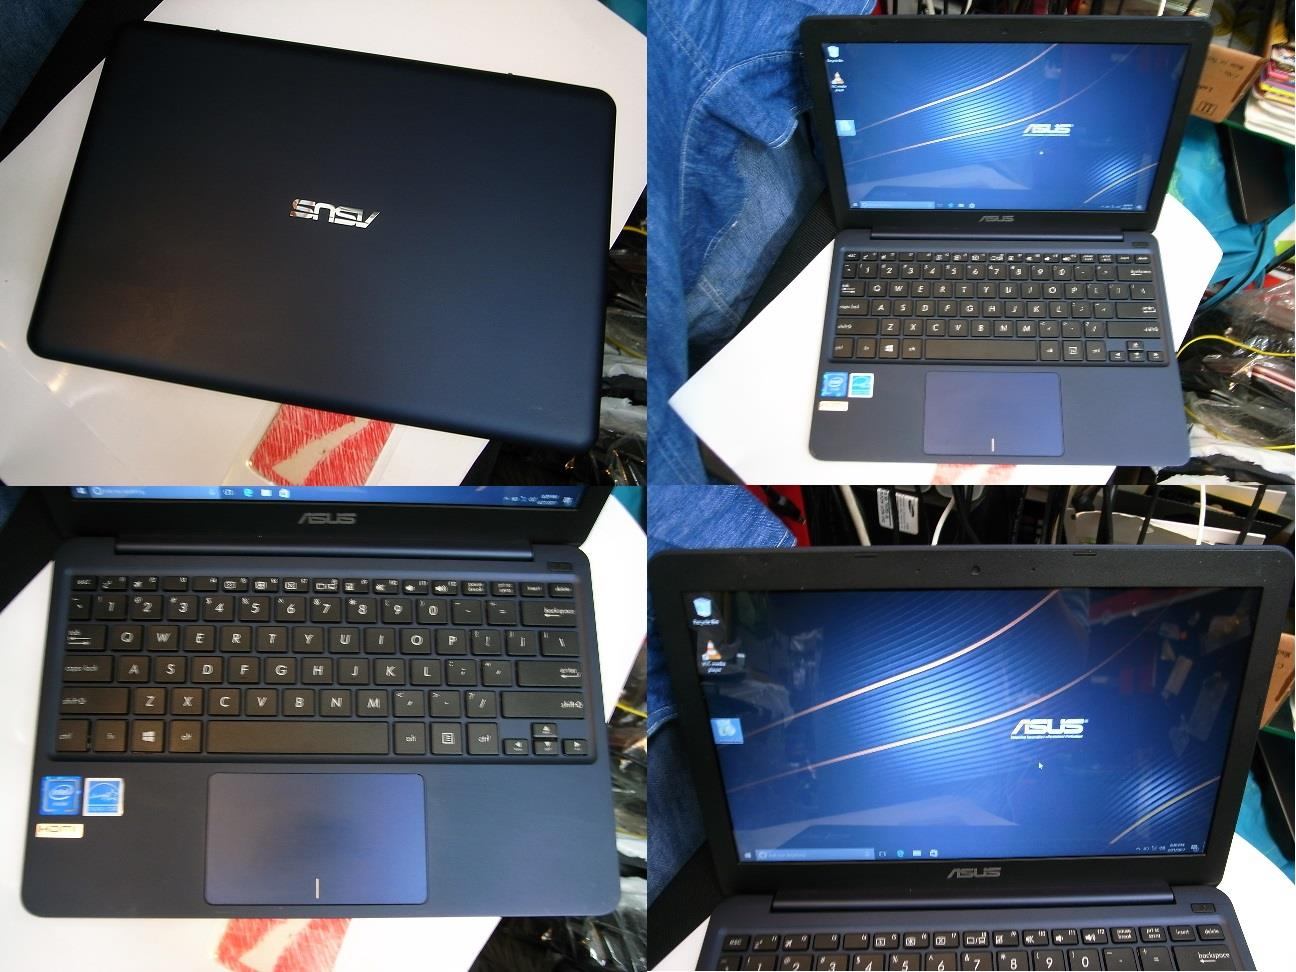 Asus E200h 116 Inch 098kg 32gb 10h End 6 21 2017 115 Pm 11 10hour Battery Vivobook Rm750